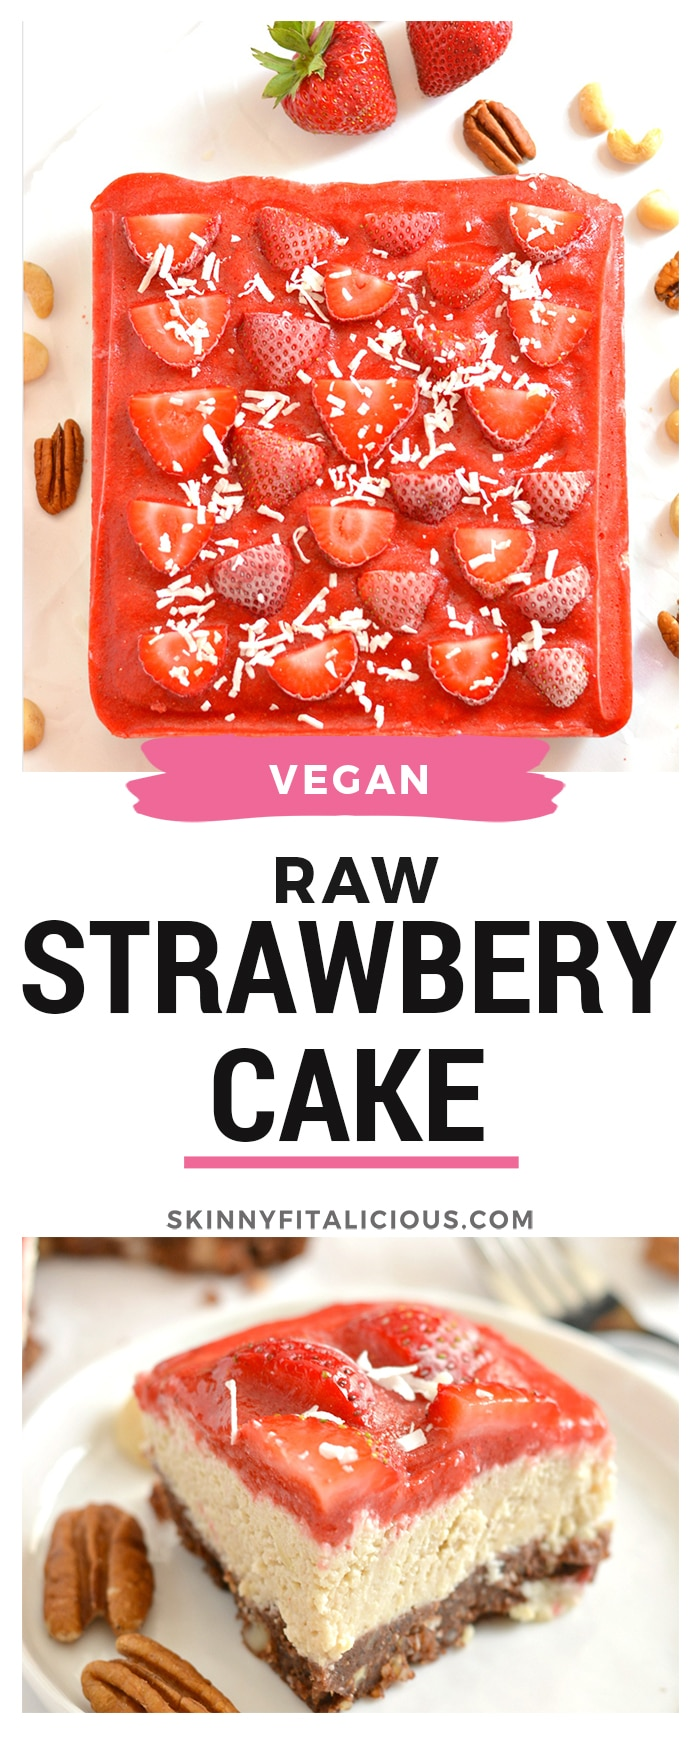 Raw Strawberry Cake is a nutrition powerhouse! Made with a cocoa macadamia pecan crust, creamy cashew filling and topped with a strawberry sauce, this is a dessert you cannot resist. Vegan, Paleo, gluten free, grain free & dairy free!